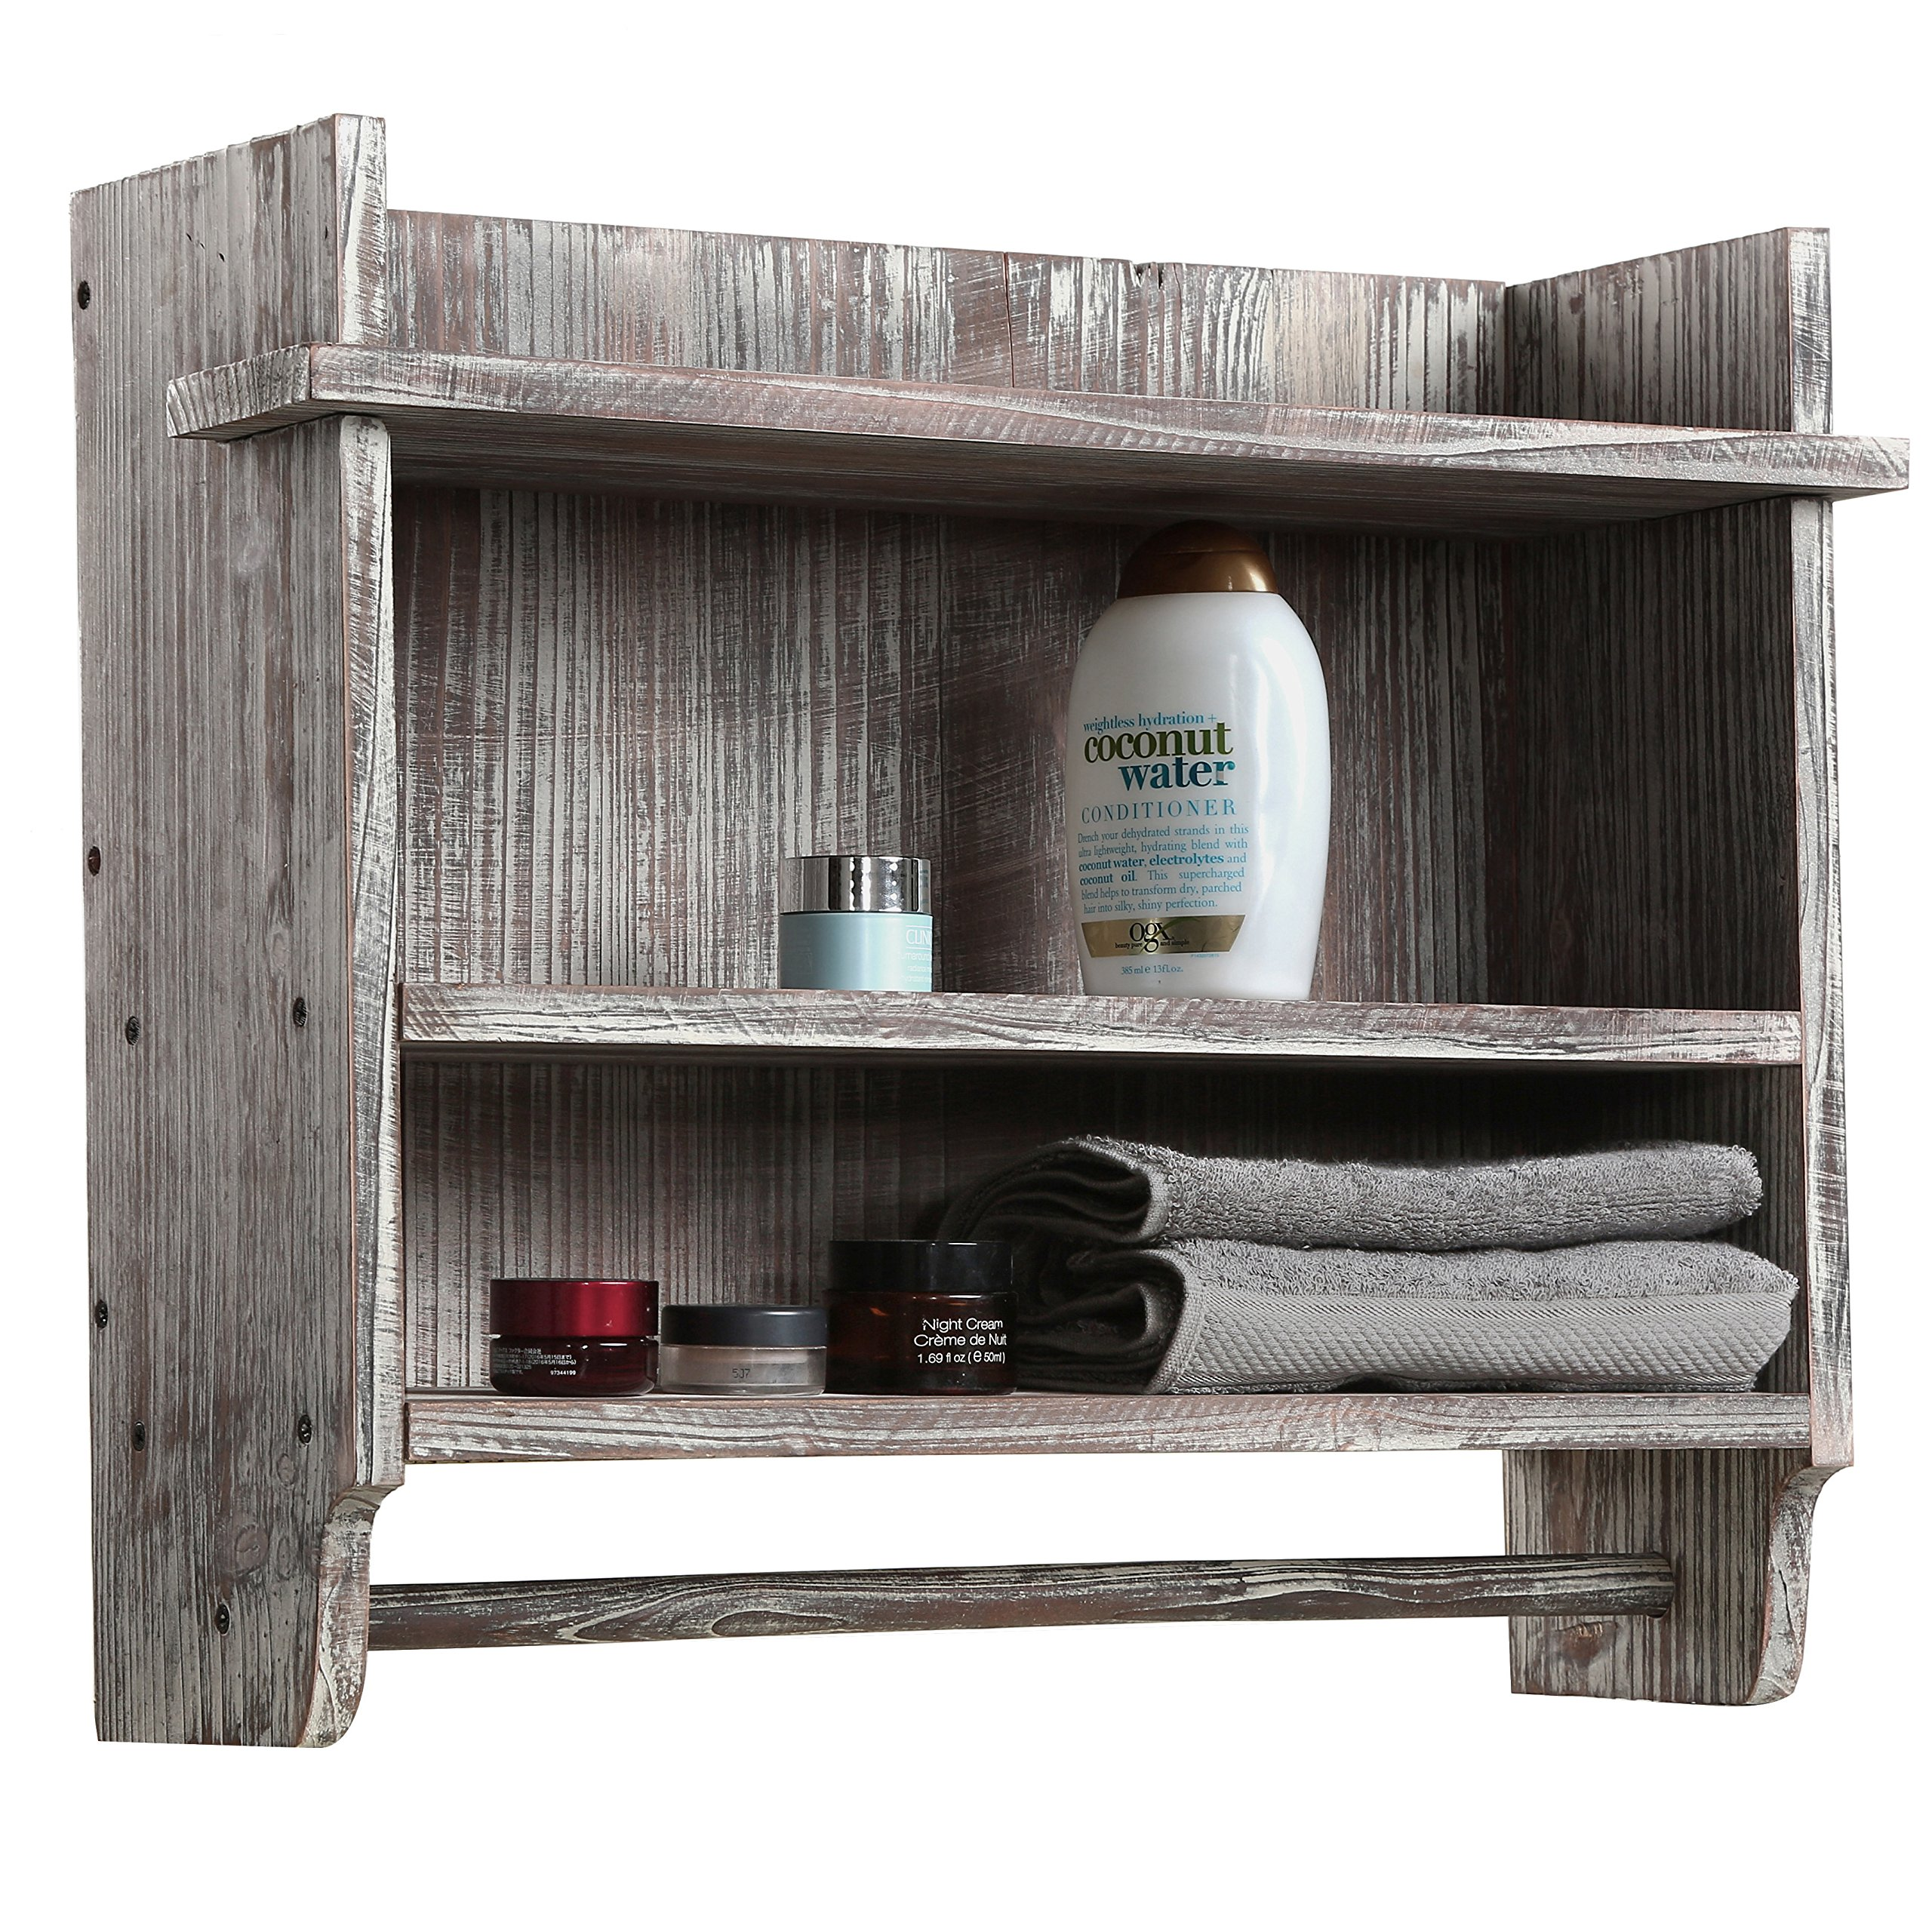 Details About Wall Mounted Torched Wood Bathroom Organizer Rack With 3  Shelves And Hanging